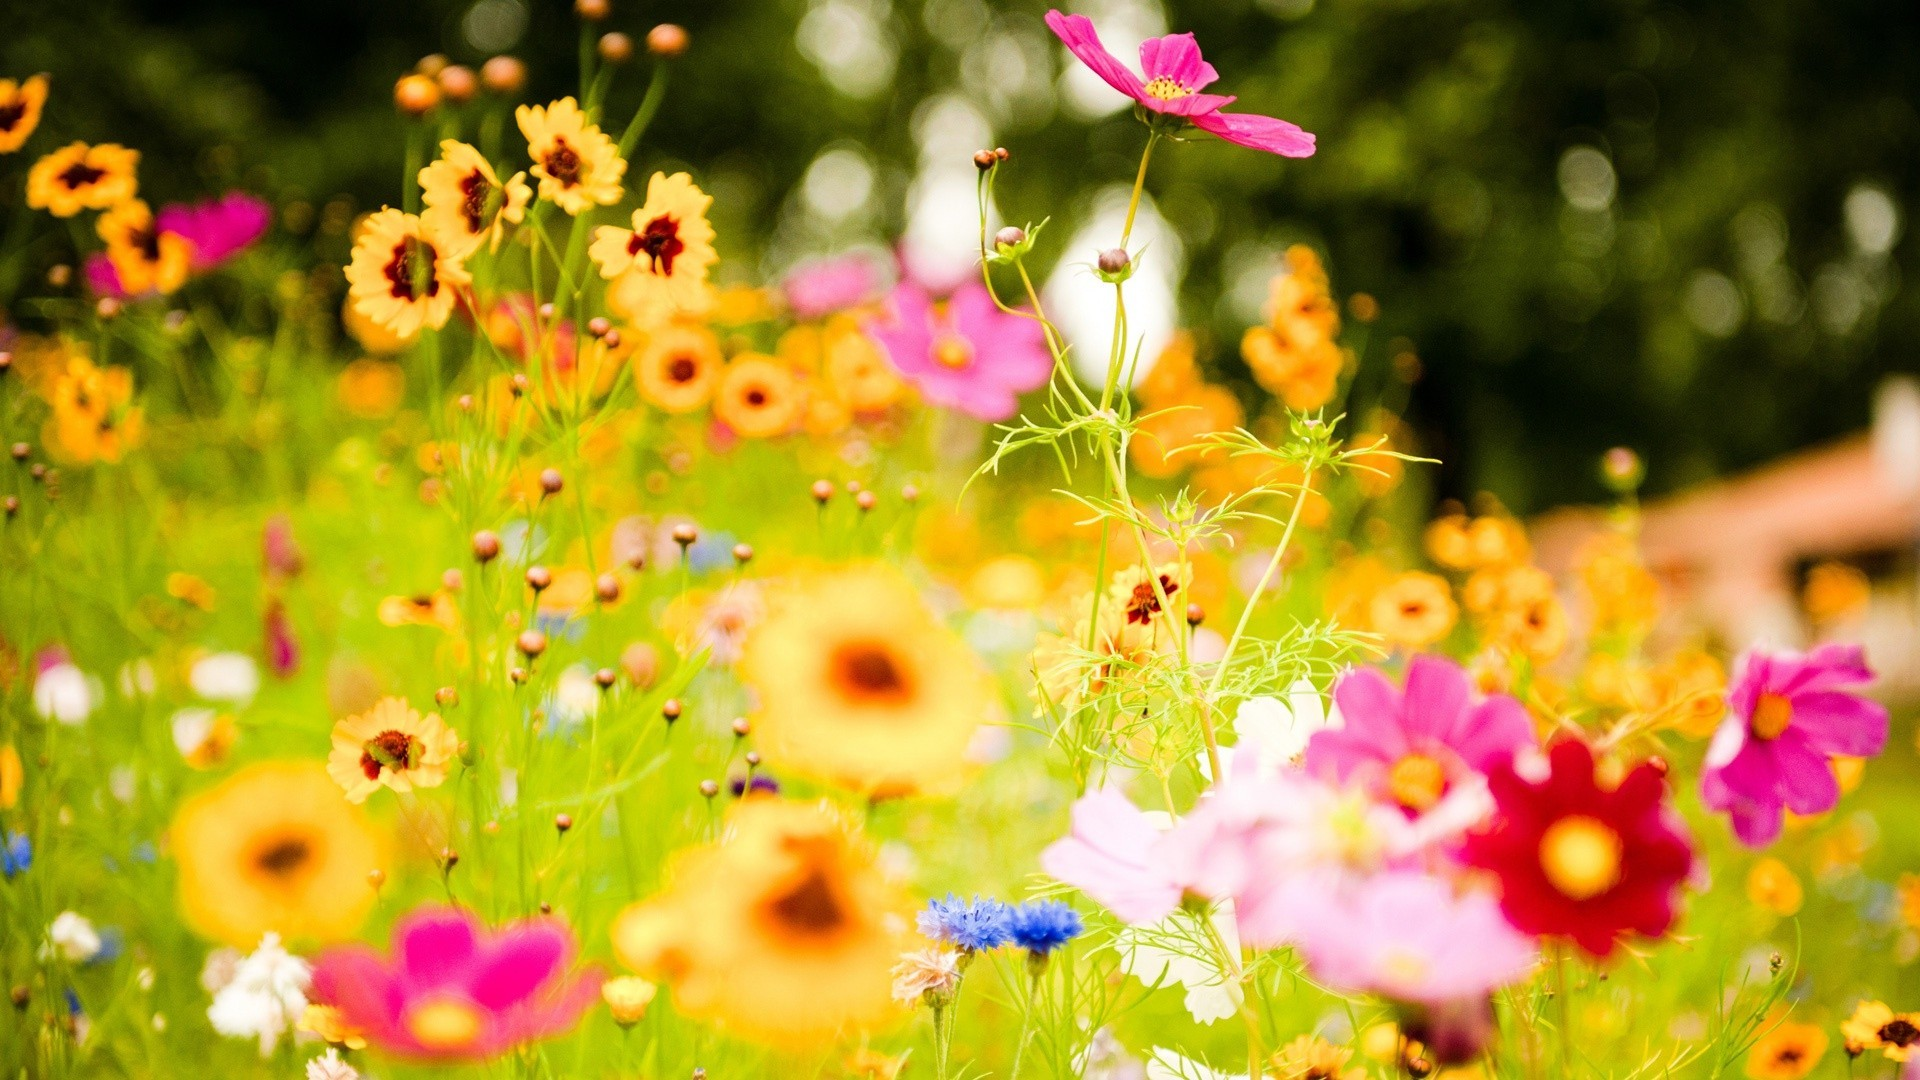 HD Wallpapers Nature Flowers 3d